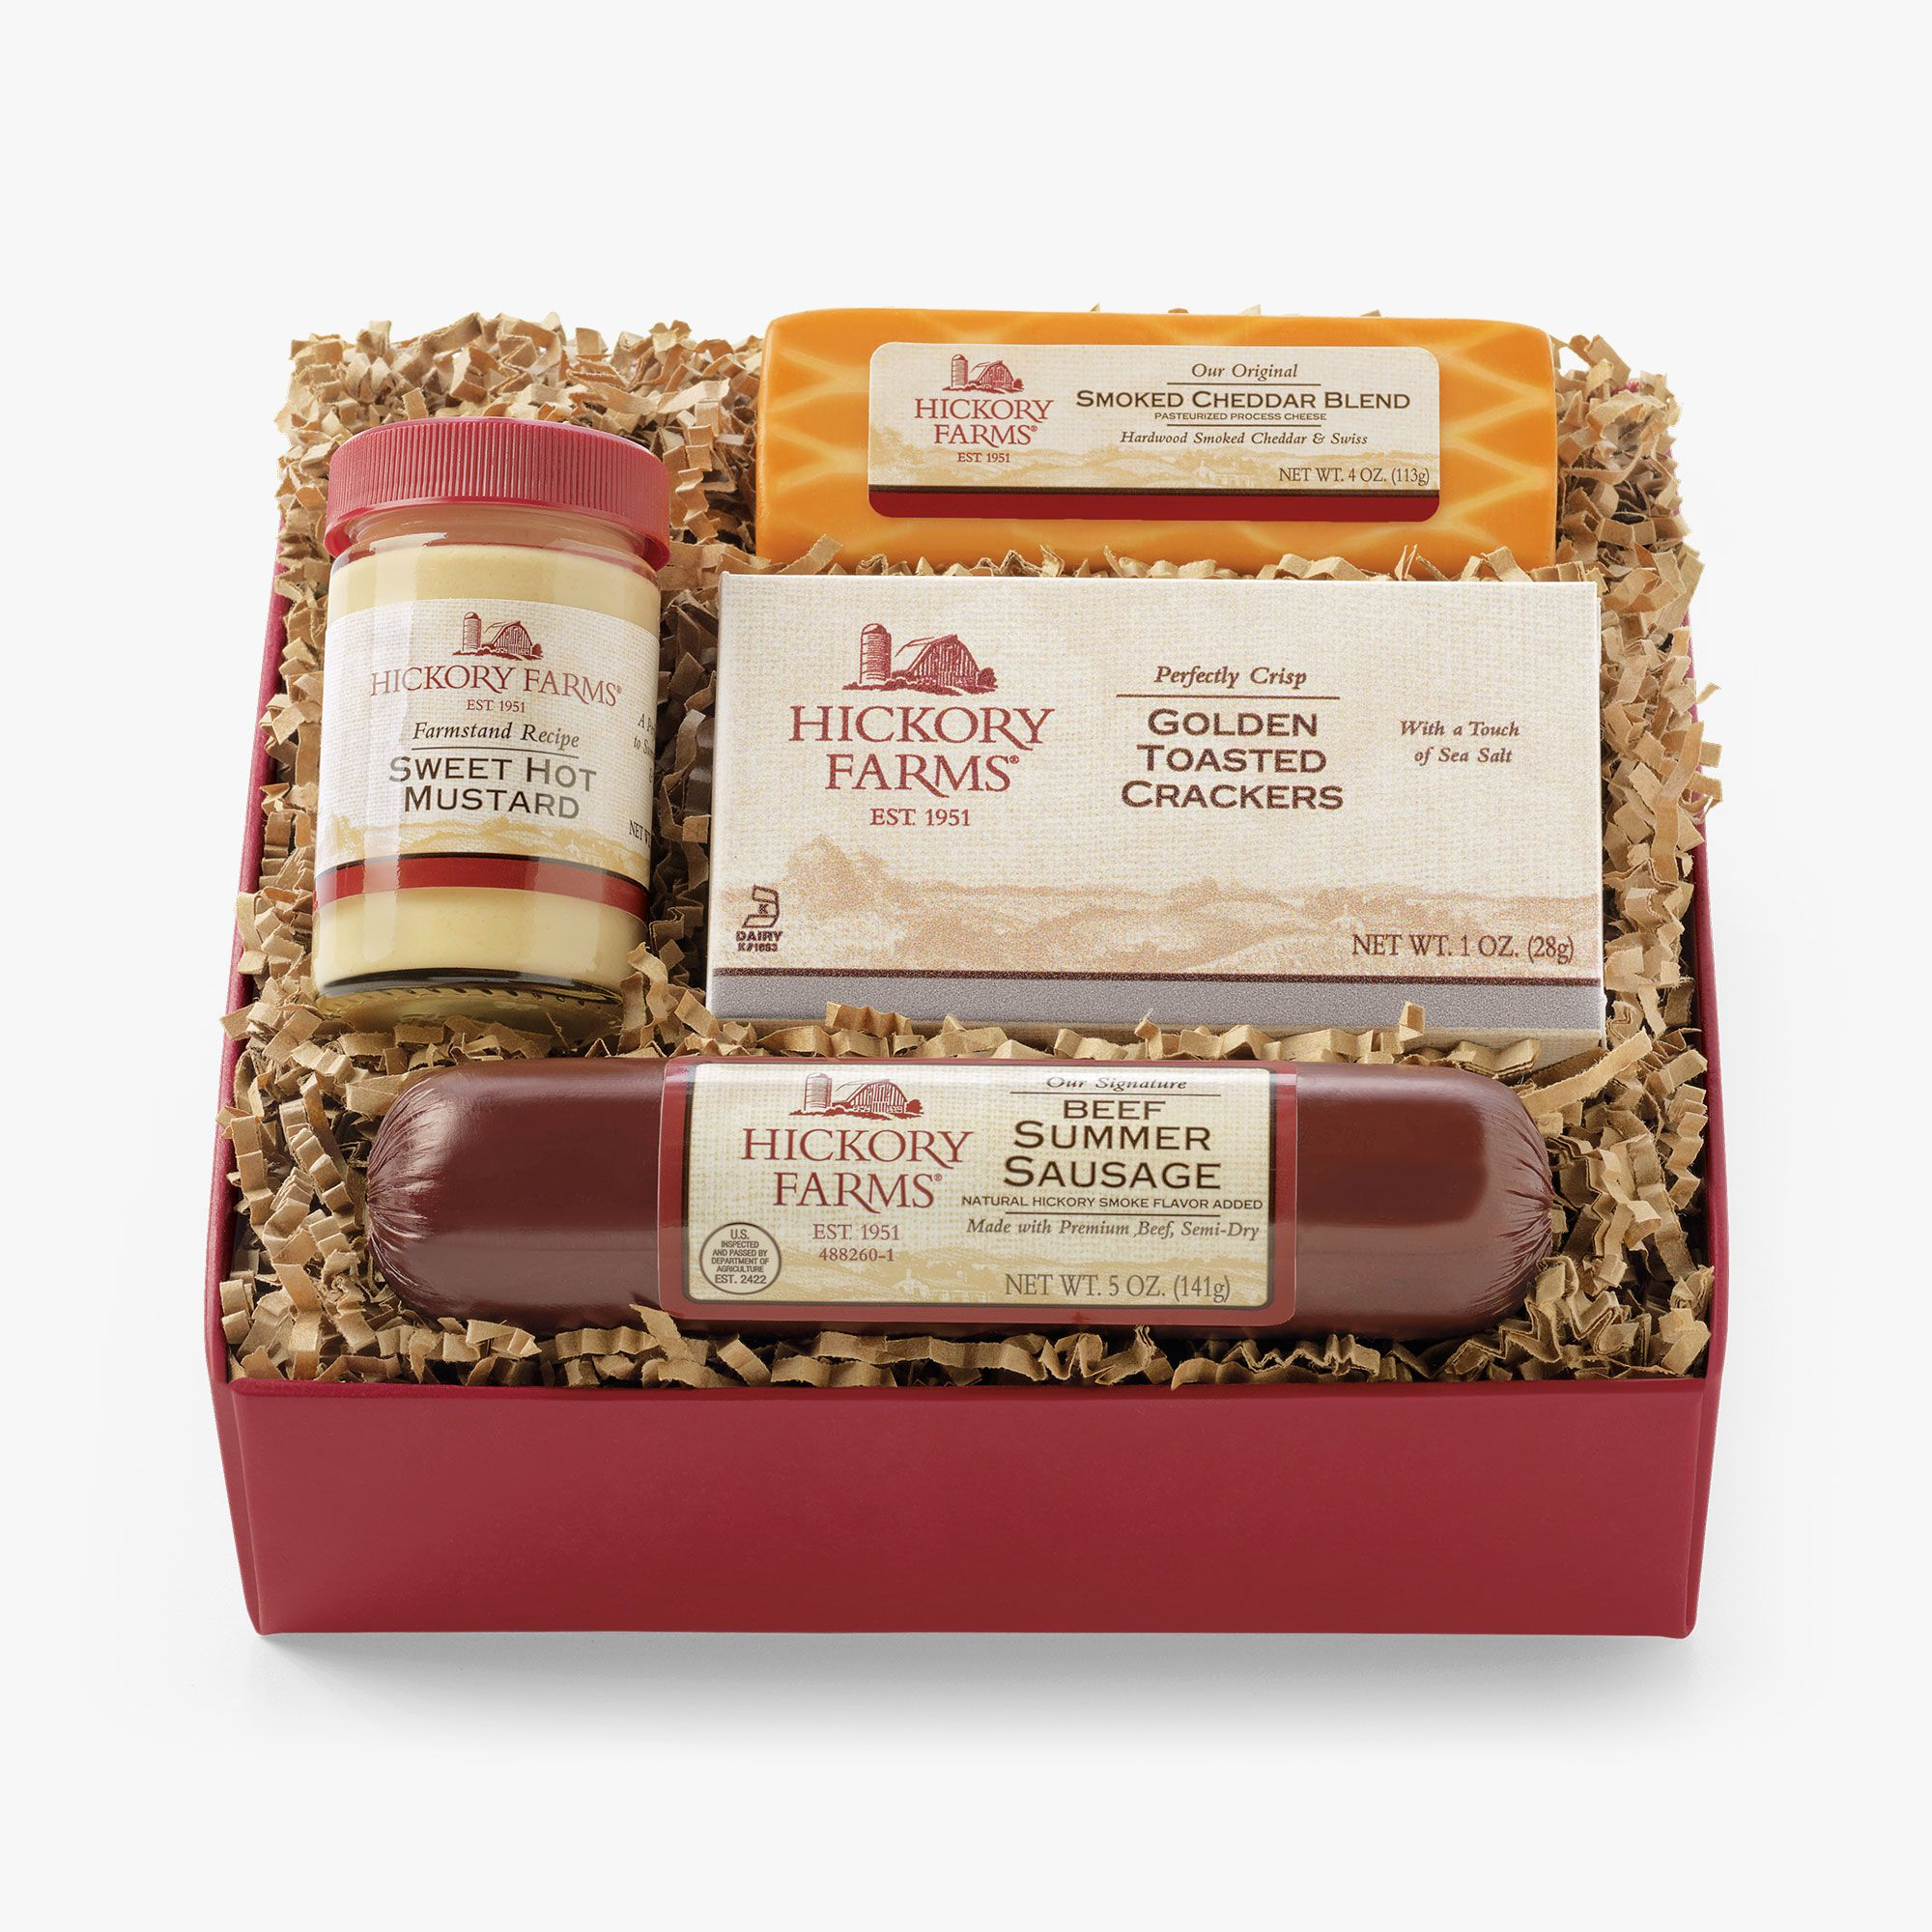 Beef Hickory Sampler | xmas | Pinterest | Hickory farms, Gifts and ...